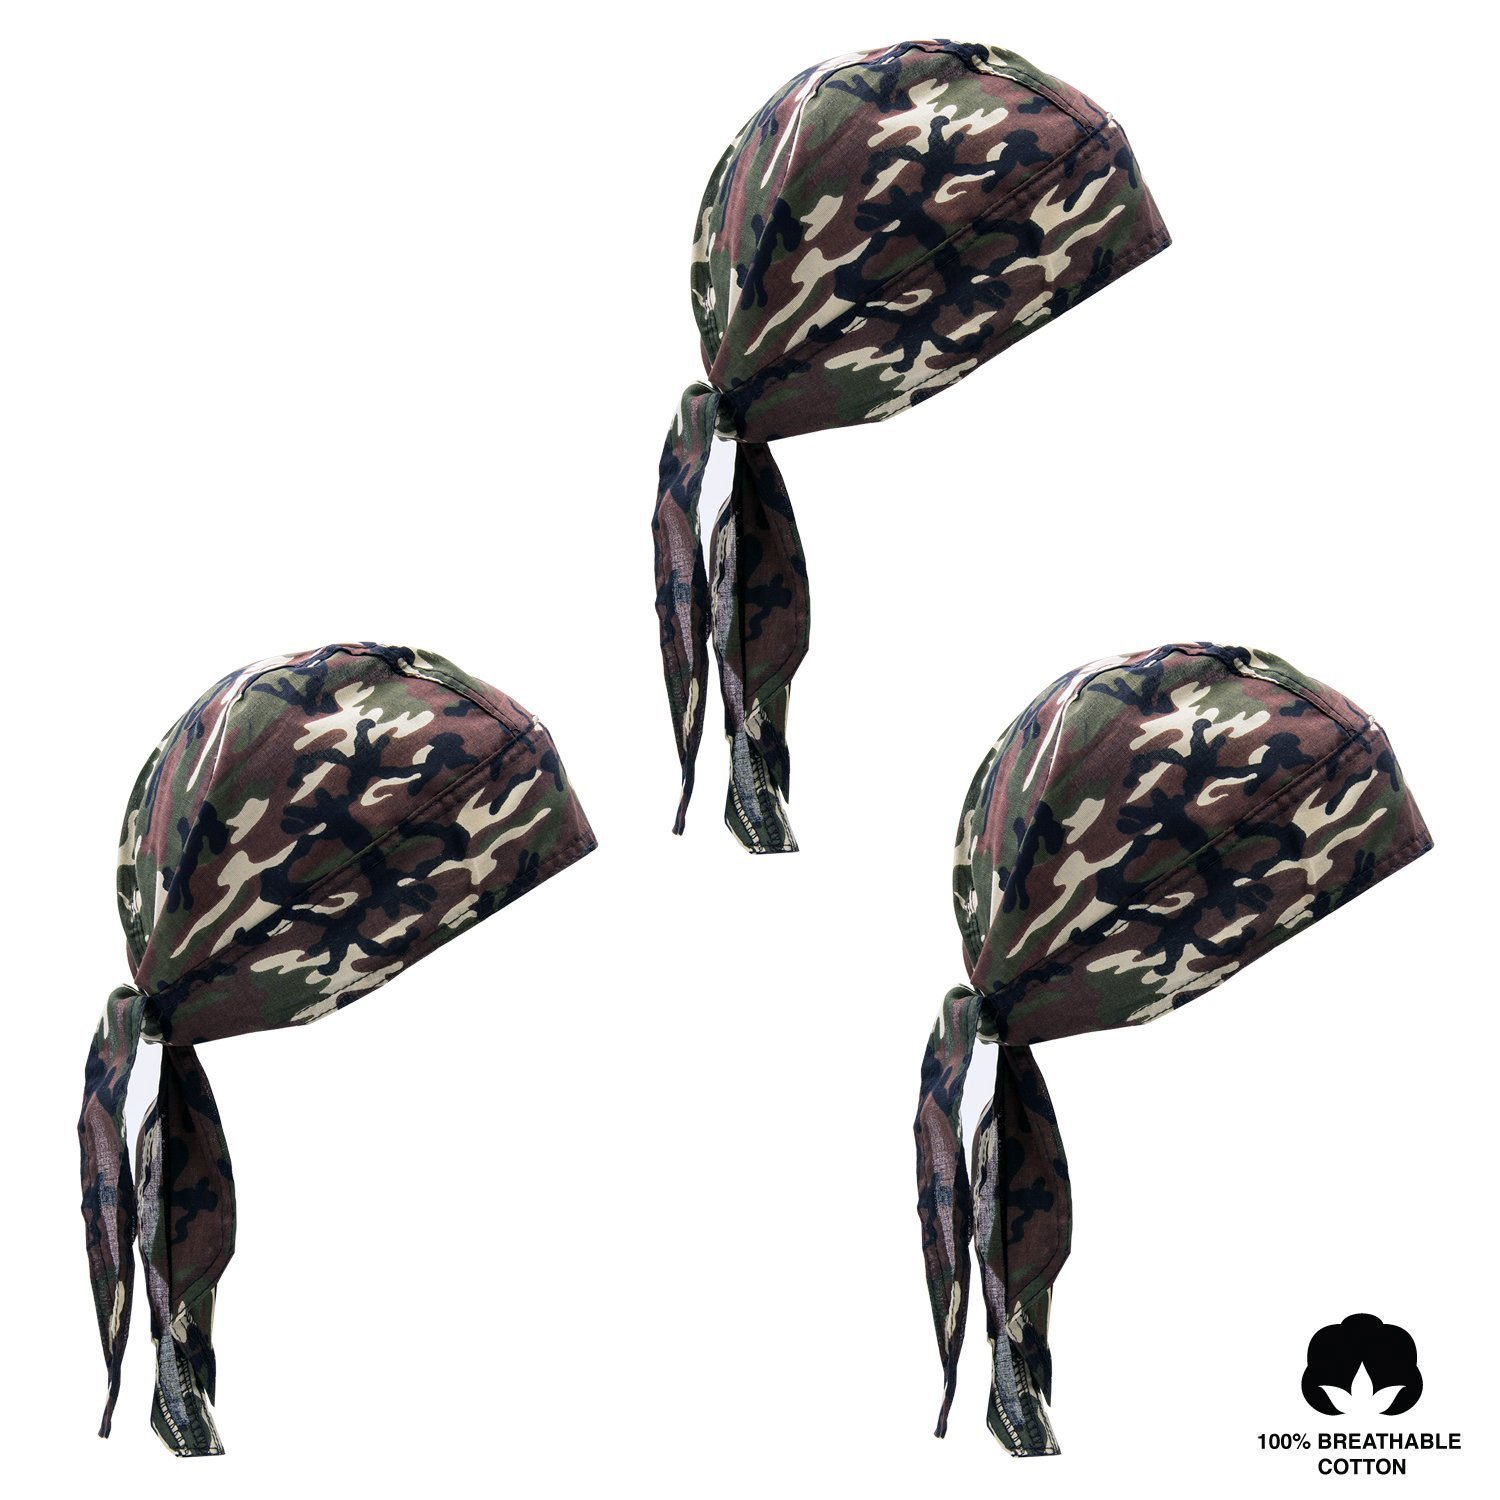 Elephant Brand Doo Rag 100% Cotton - Skull Cap Beanie for Cycling - Head Wrap Pack of 3 (Camouflage)